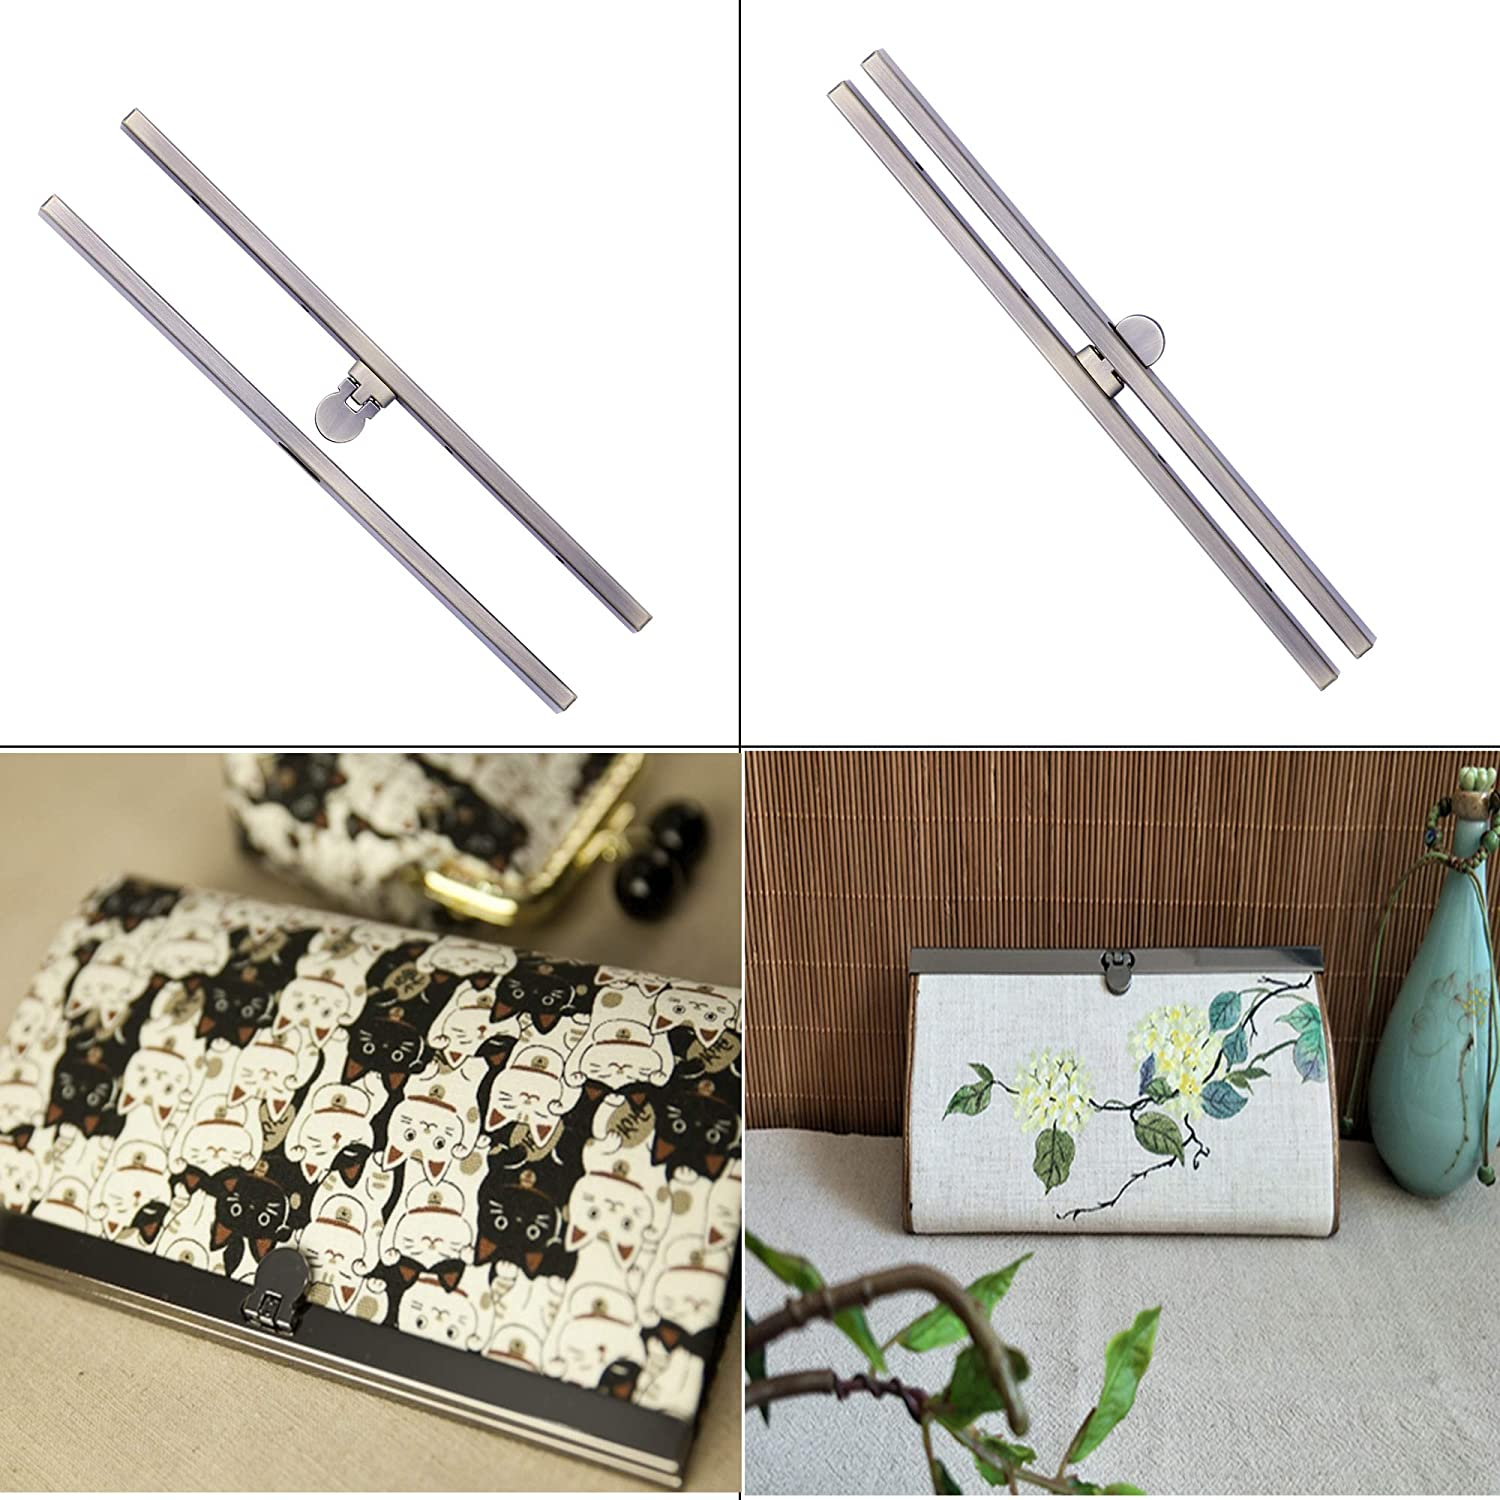 Bag Supplies for Purse Making,Bag Making,Leather Craft DIY 6 Pieces Clasp Lock Packs,MIUSIE 7.48Inch Metal Purse Frame Kiss Clasp Lock with Comfortable Grip